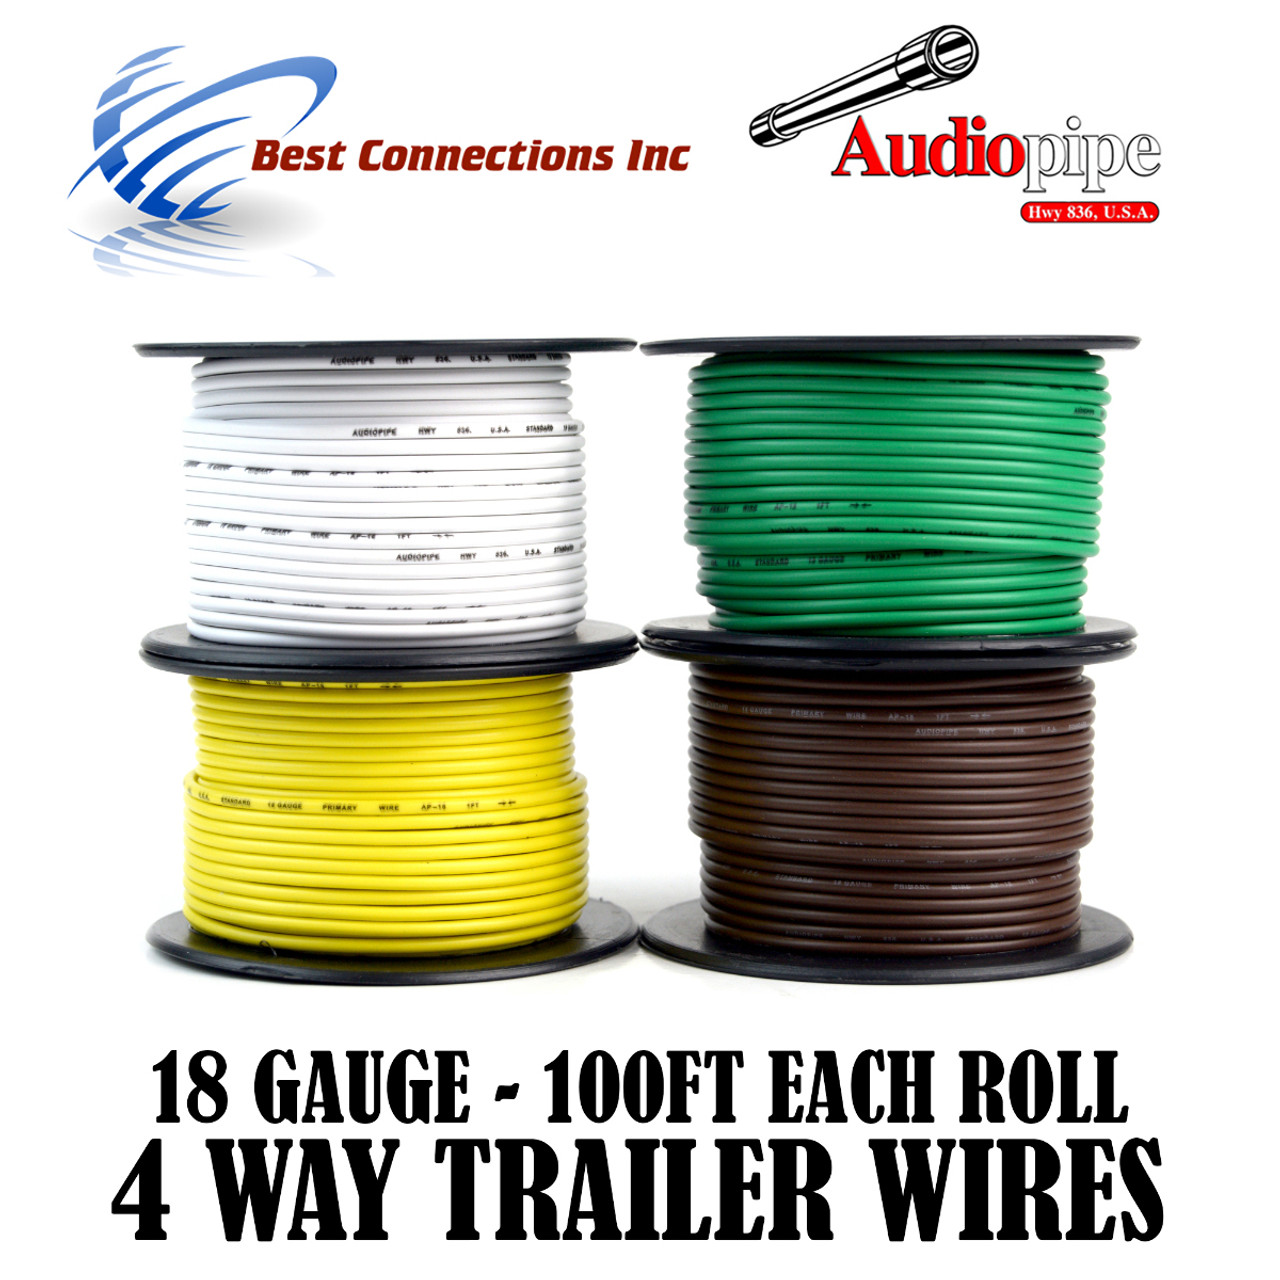 trailer wire light cable for harness 4 way cord 18 gauge 100ft rh ocalapowersports com Instrument Cluster Wiring Harness Classic Car Wiring Harness